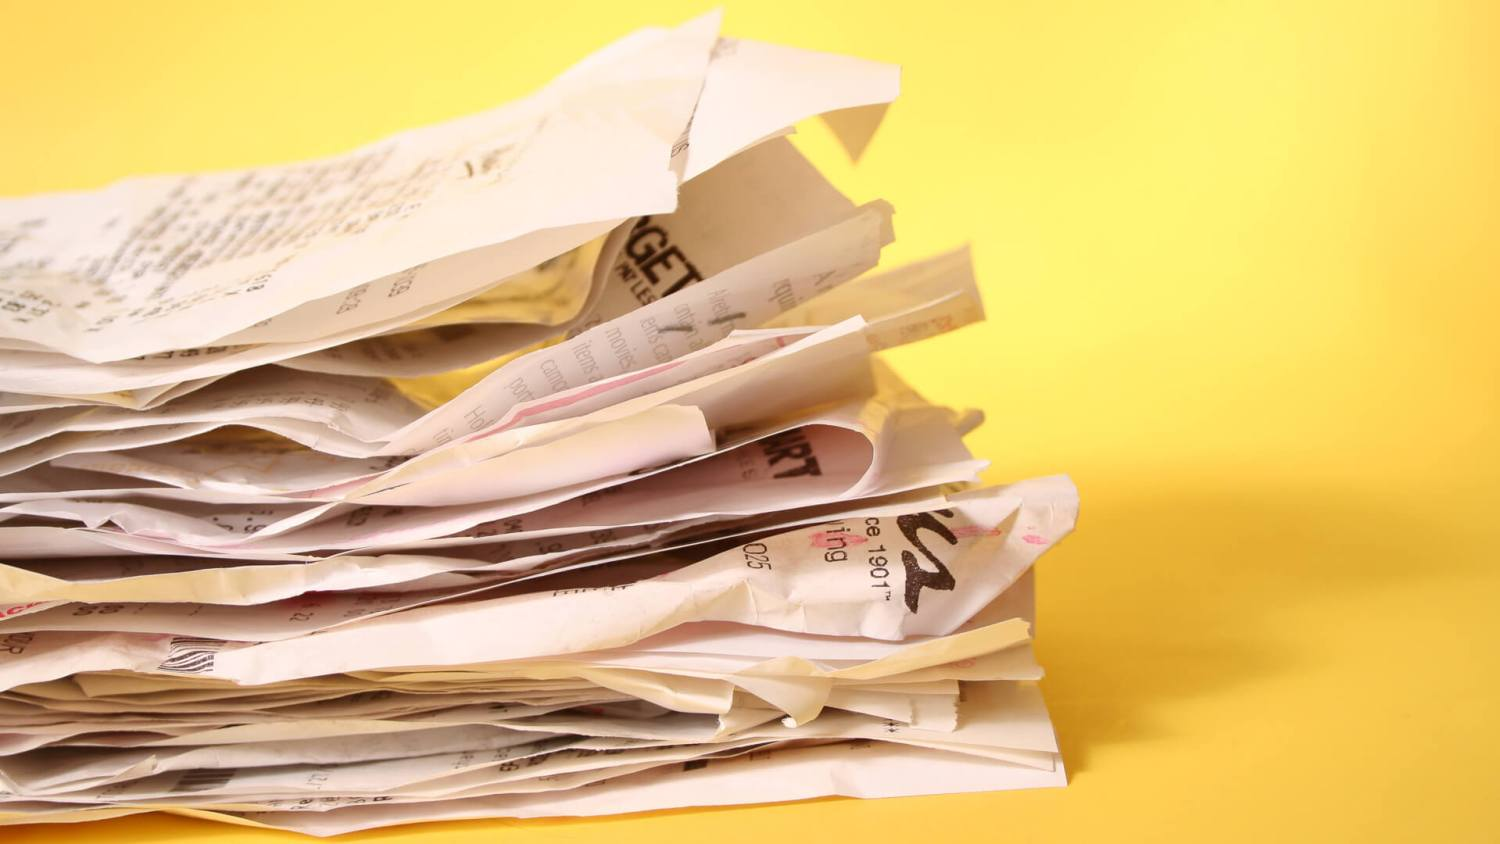 important-receipts-to-keep-for-tax-purposes-iStock-172287274